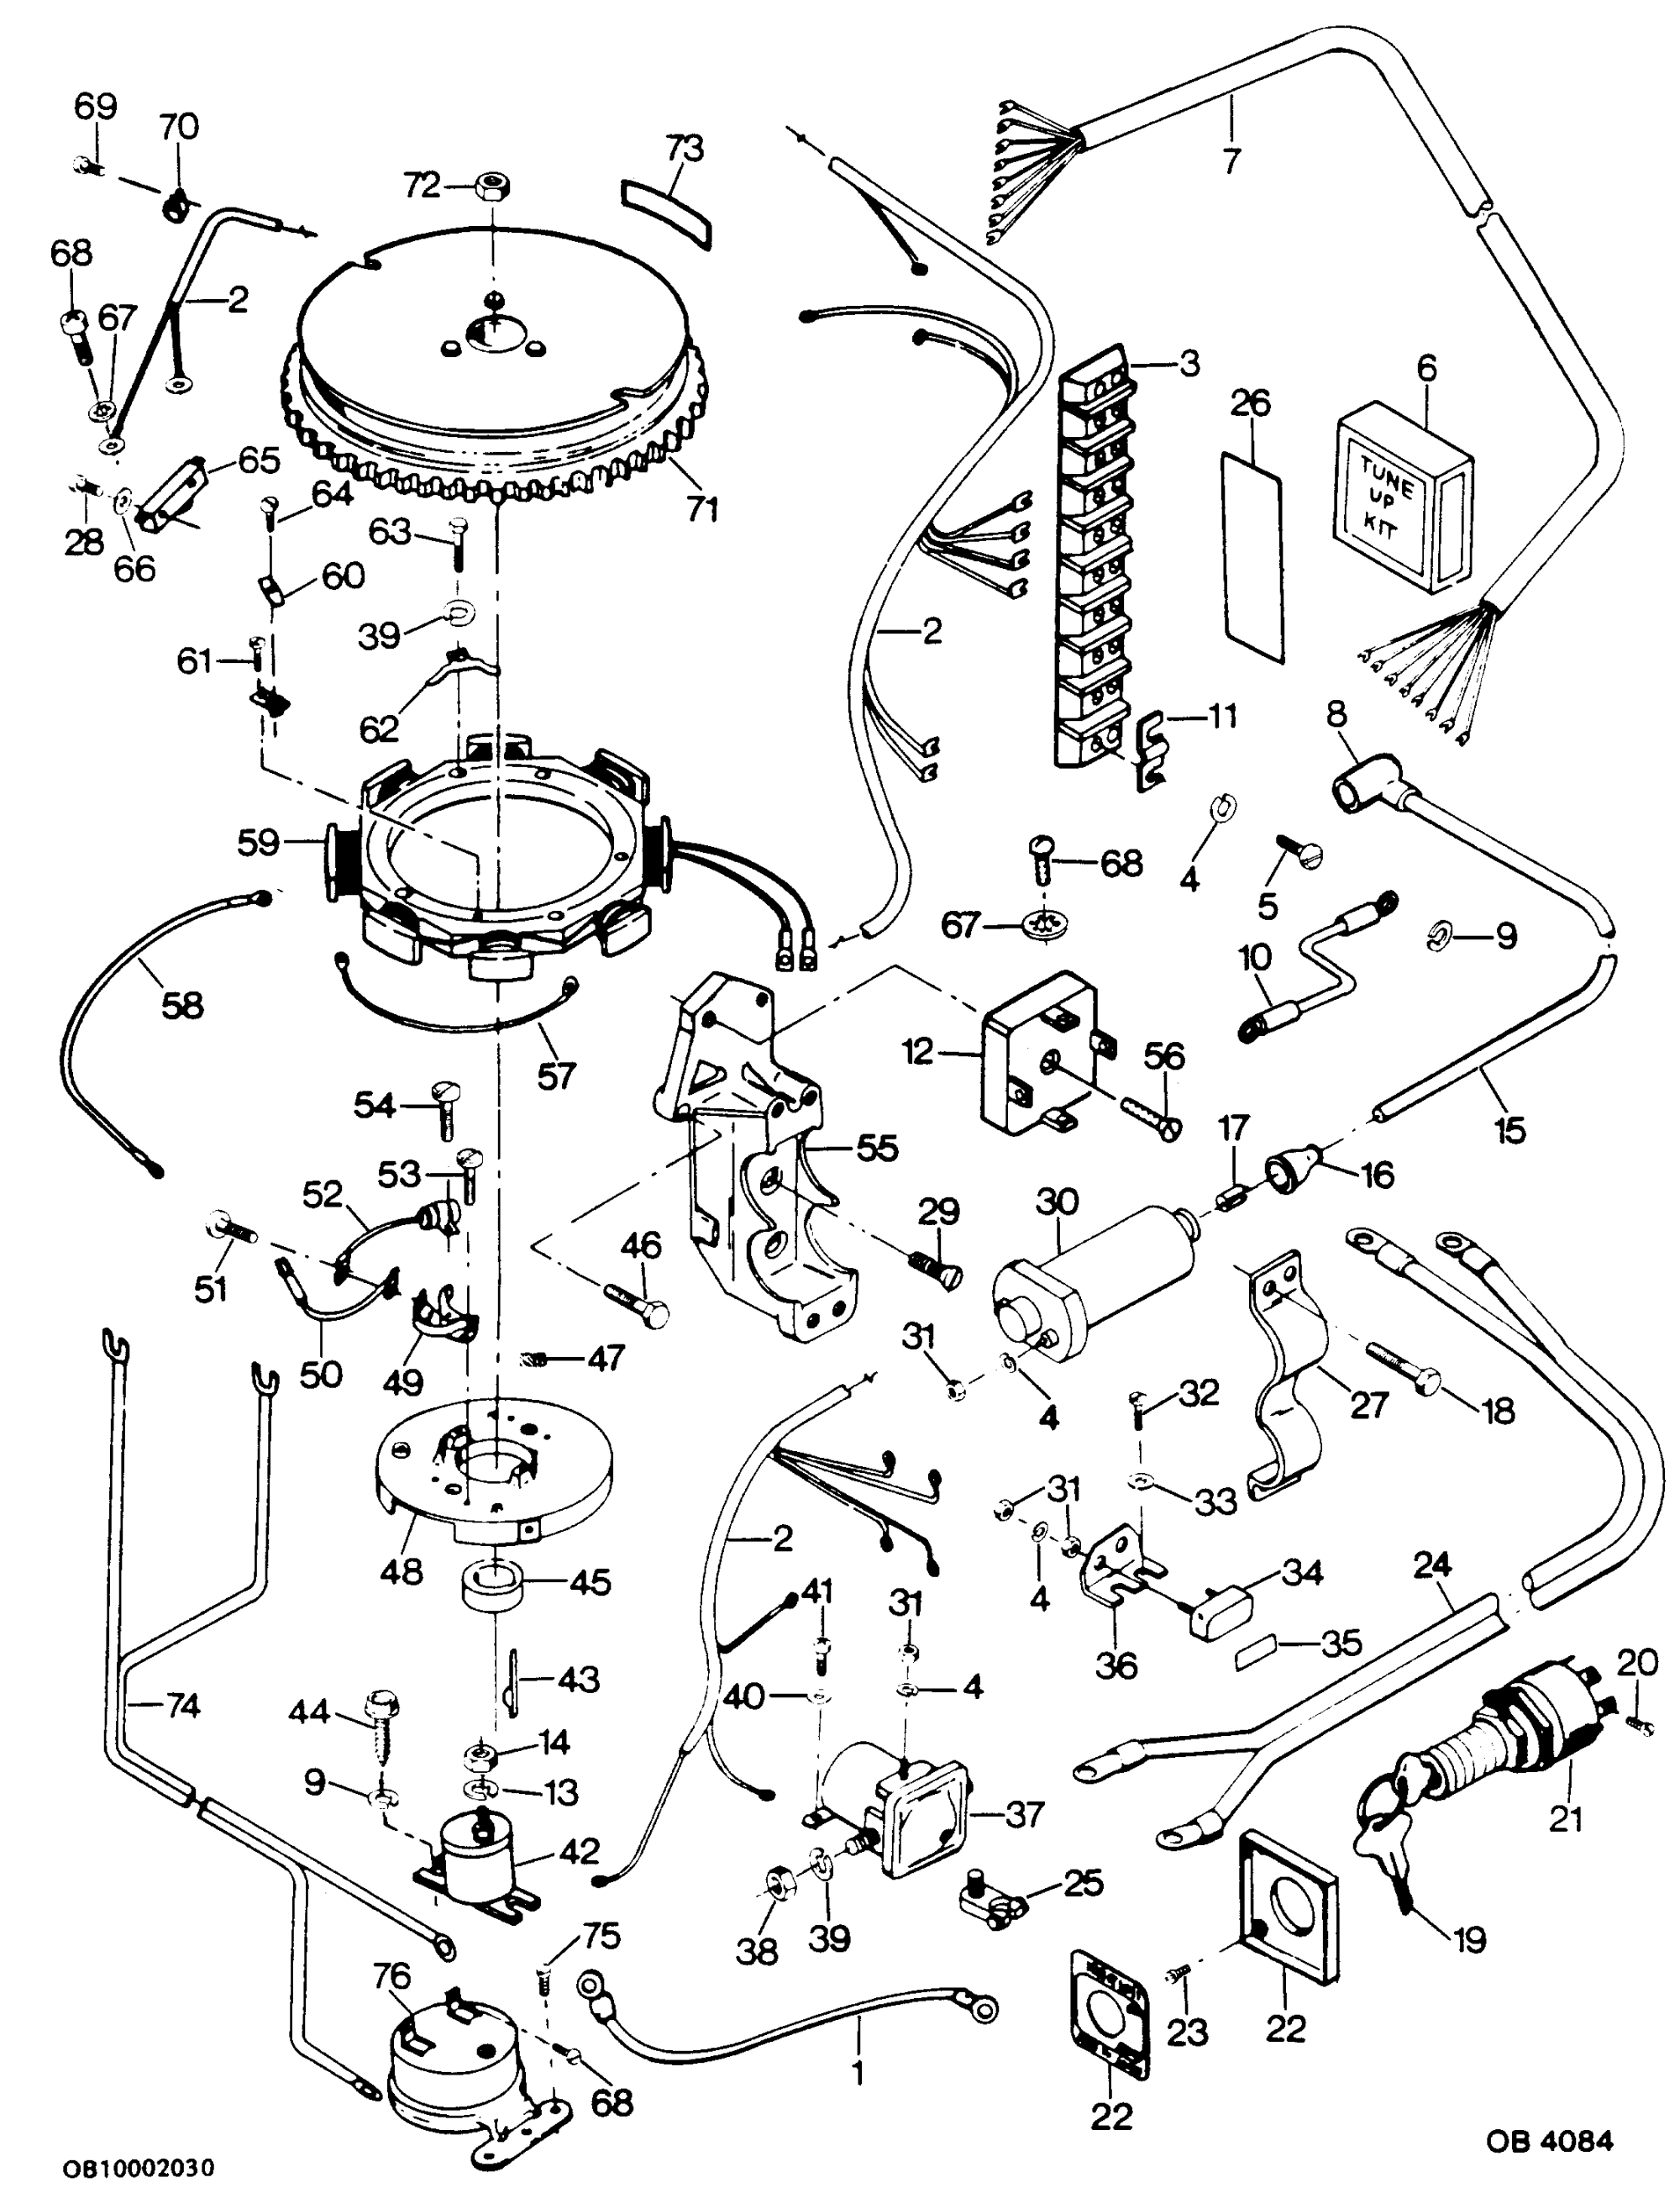 hight resolution of mercury force 50 h p 1986 507f6a alternator and electrical components